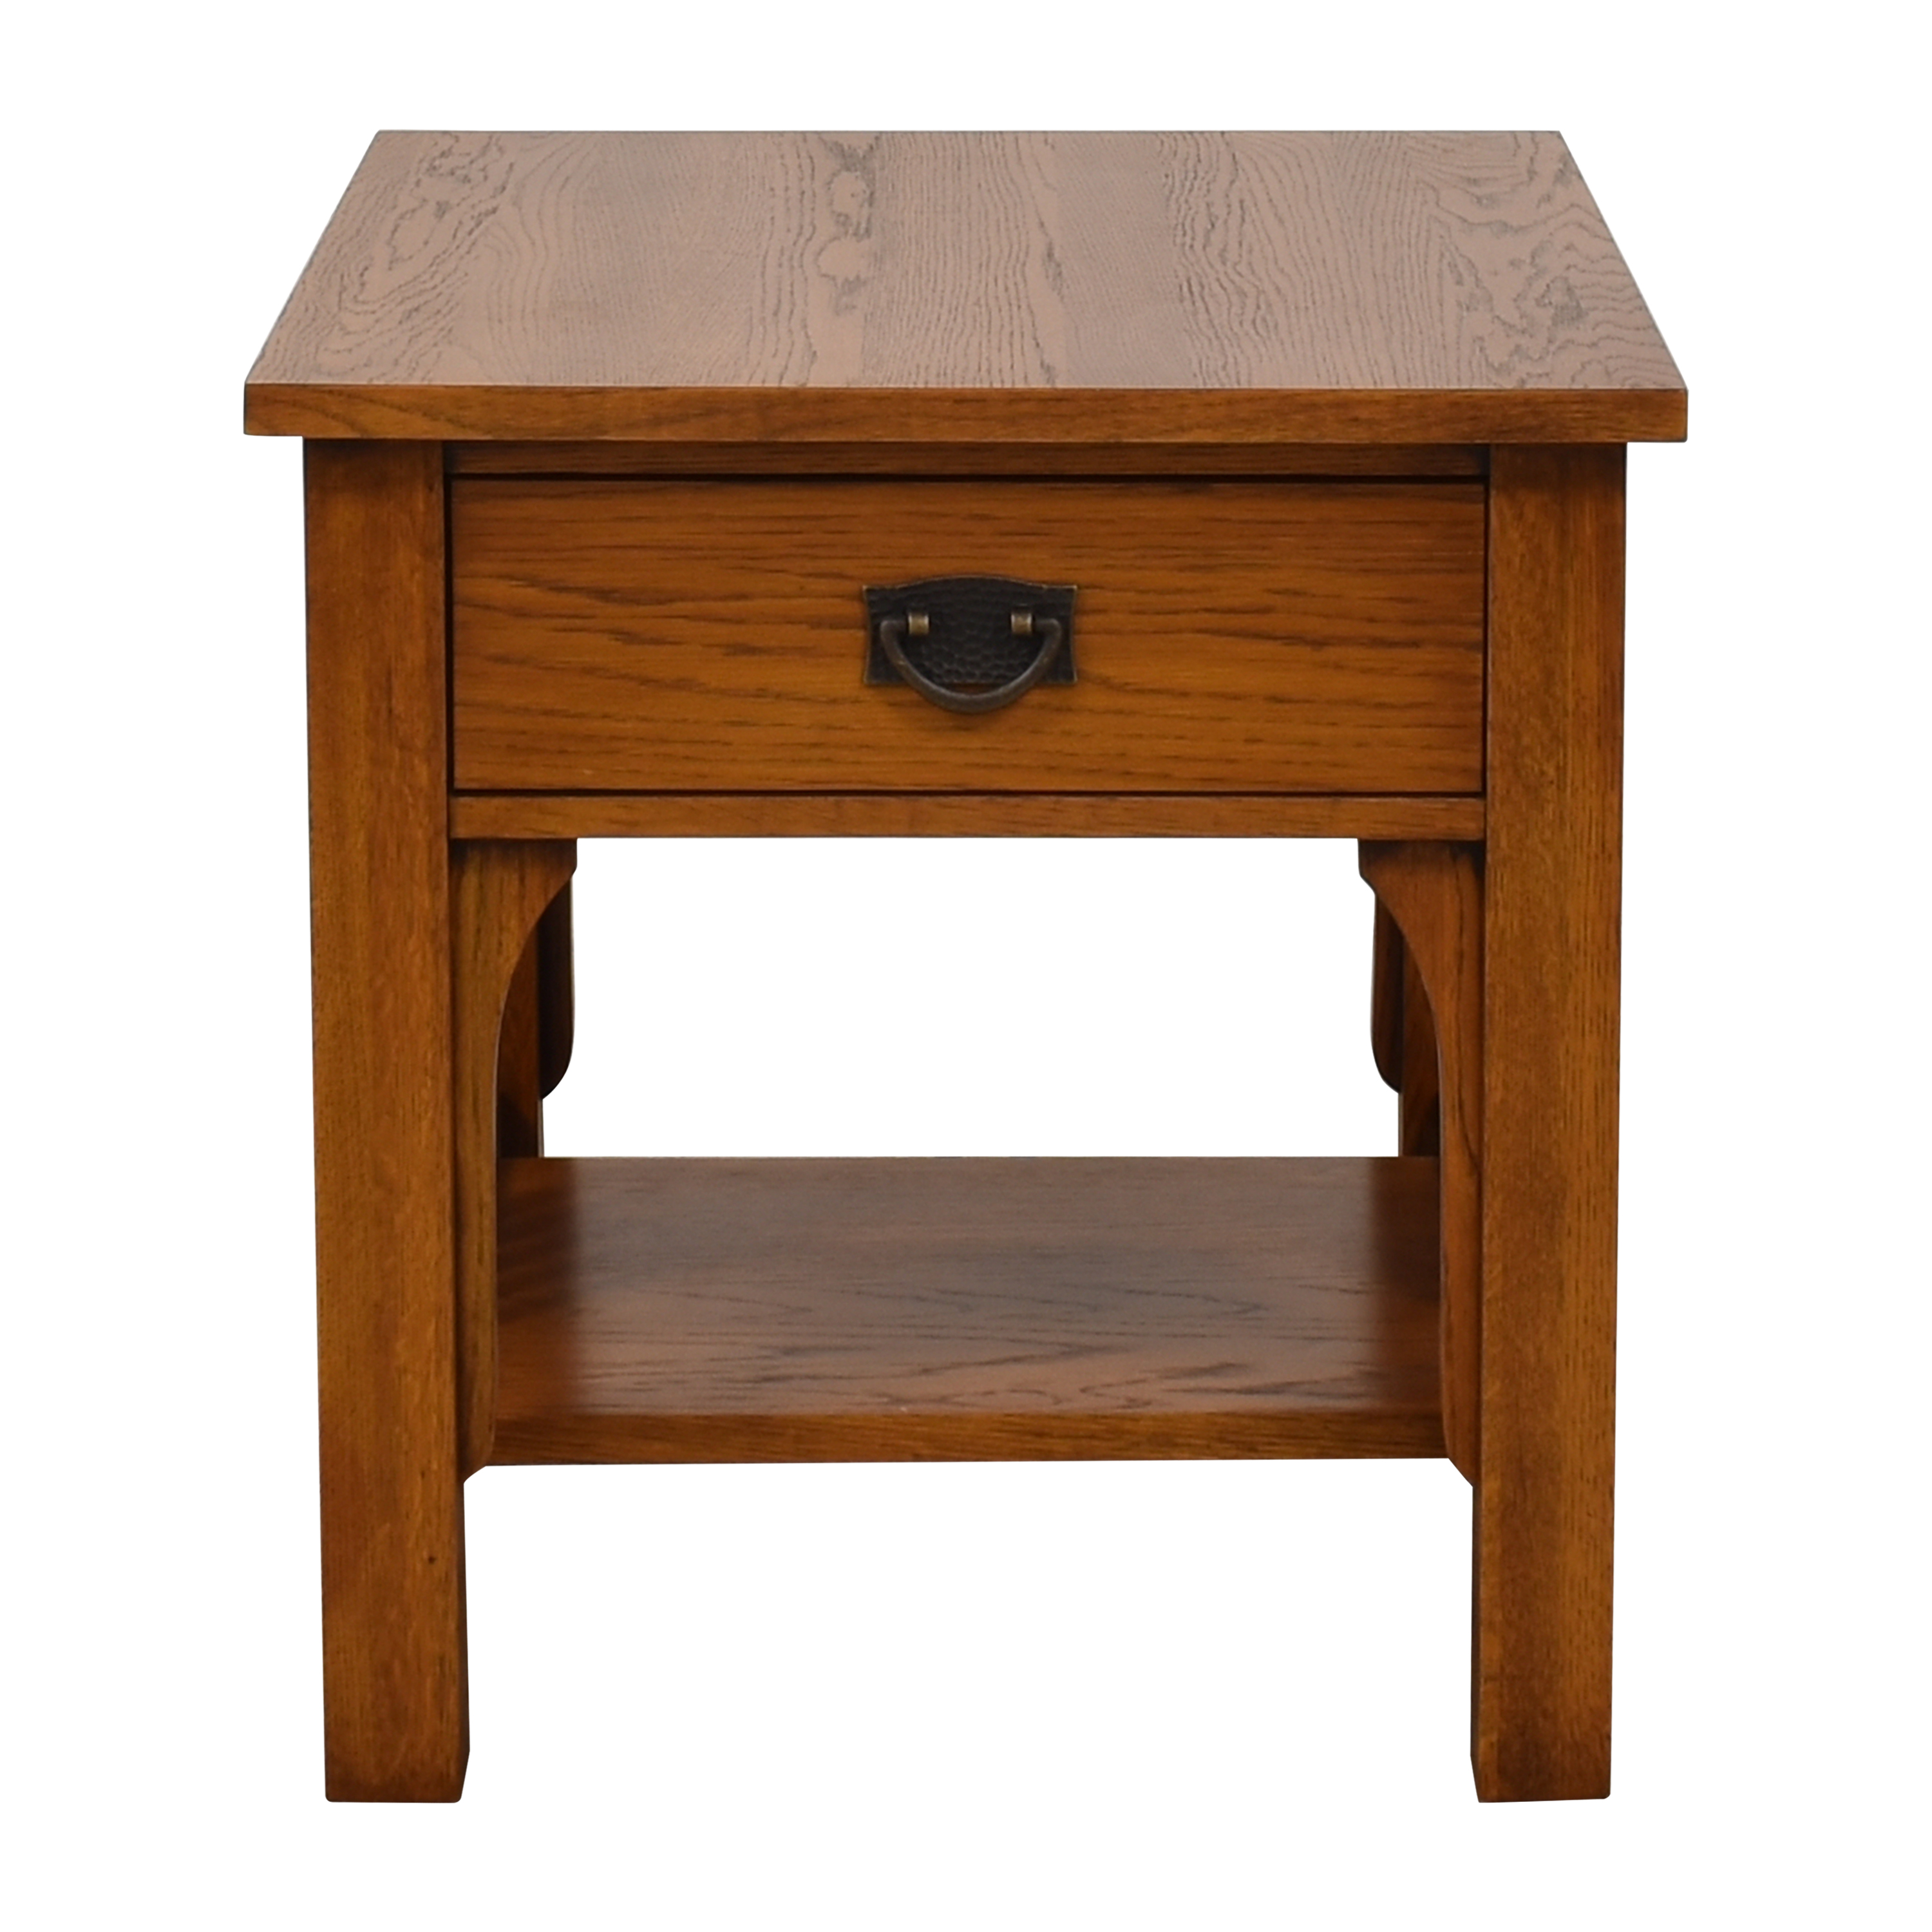 Thomasville Thomasville Impressions Mission-Style End Table second hand